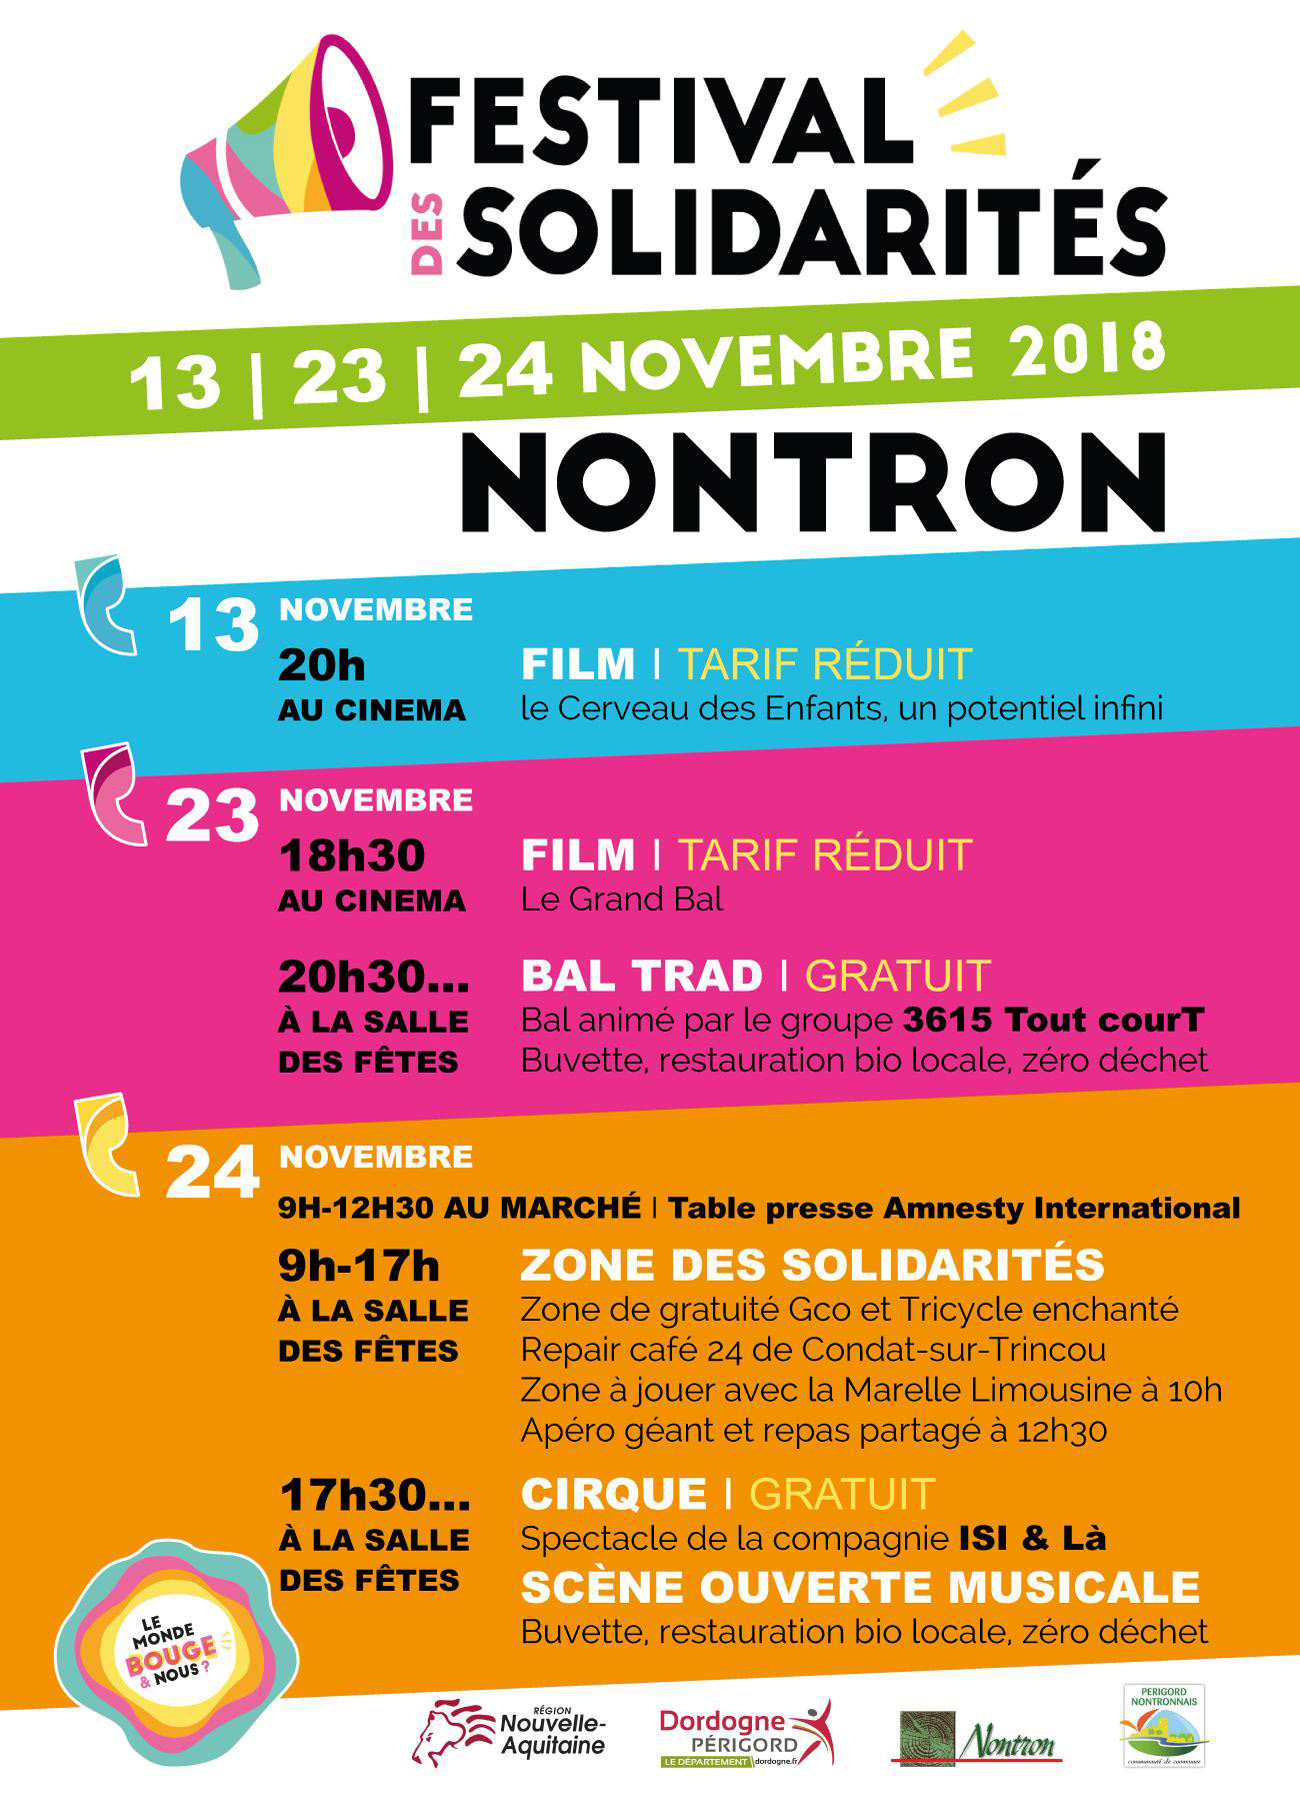 Affiche A4 mairie festisol